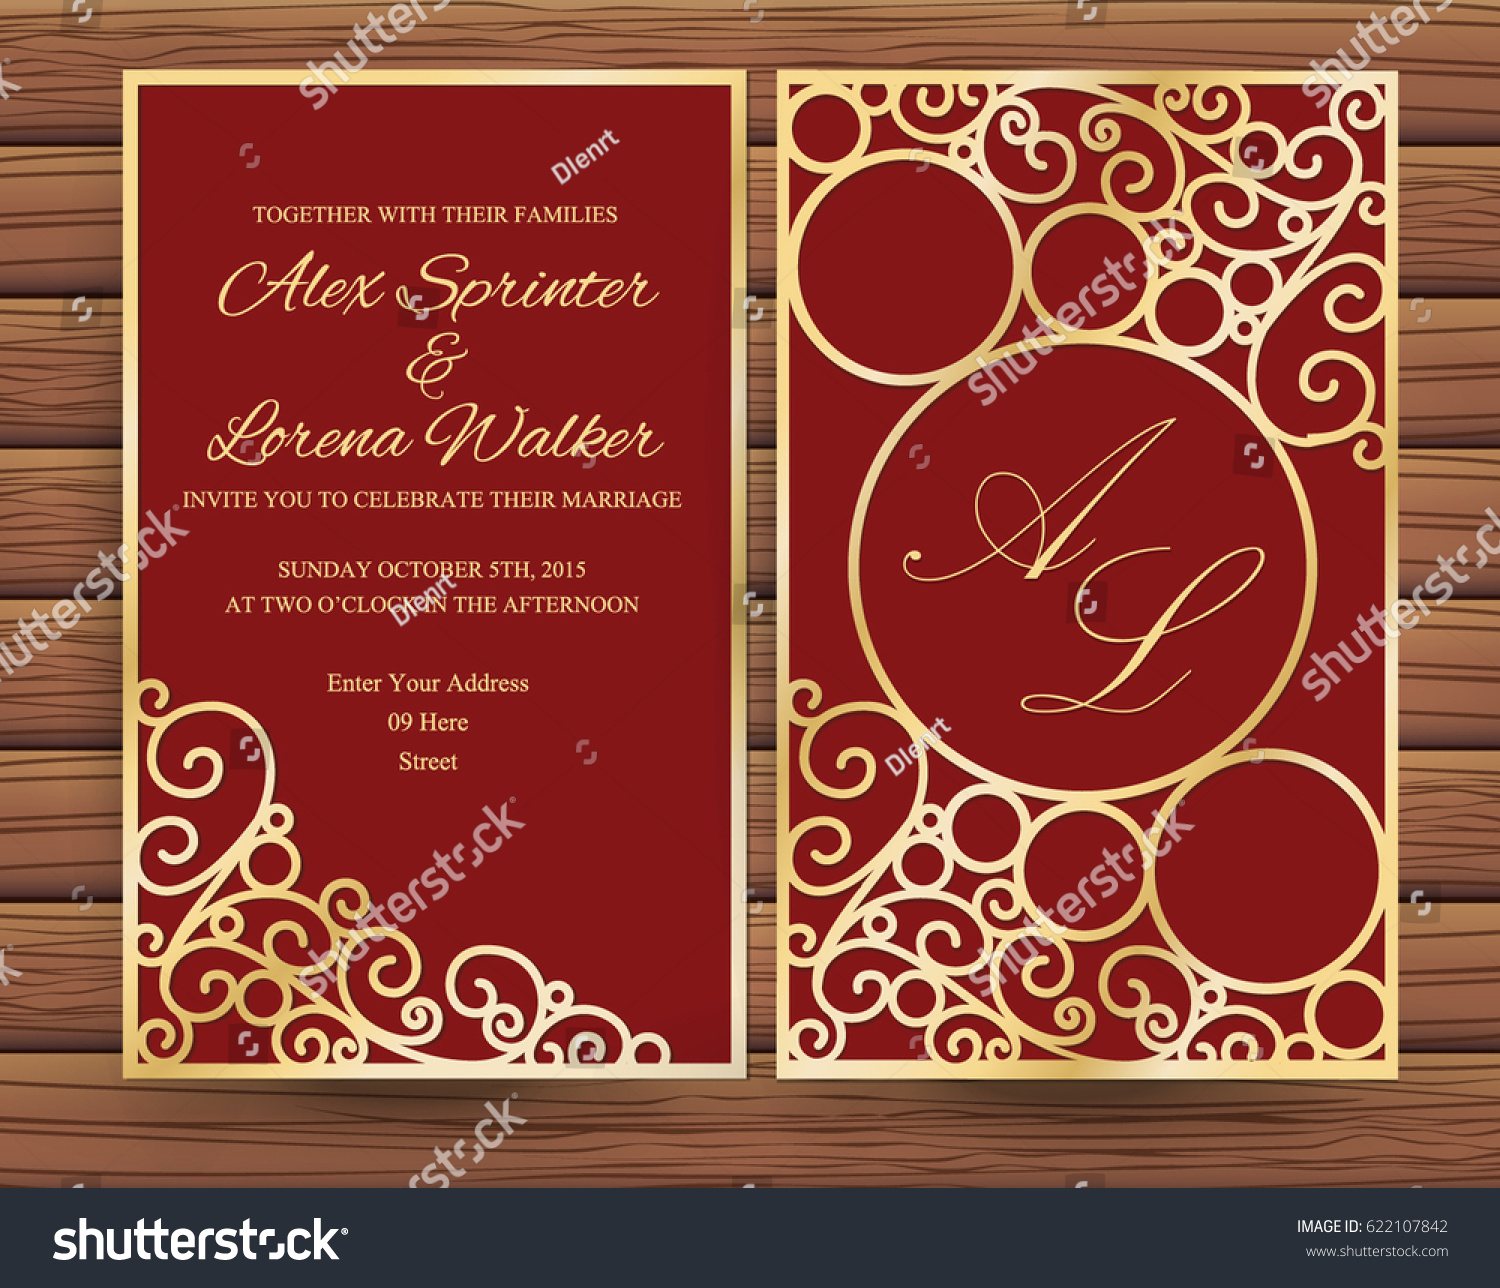 Elegant Red Gold Wedding Invitation Stock Vector (Royalty Free ...